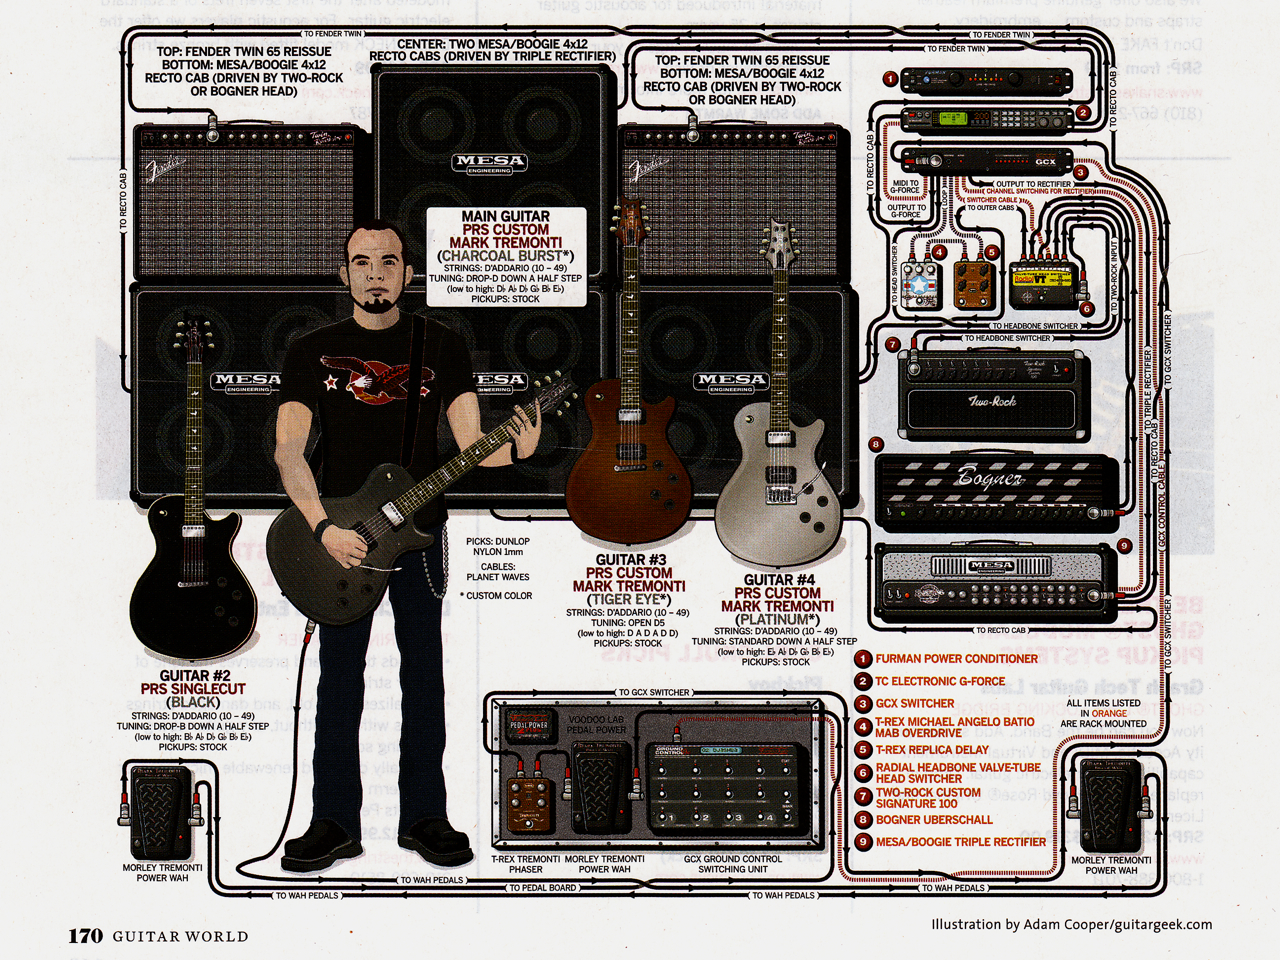 prs archon high gain amp ultimate metal heavy metal forum and community. Black Bedroom Furniture Sets. Home Design Ideas